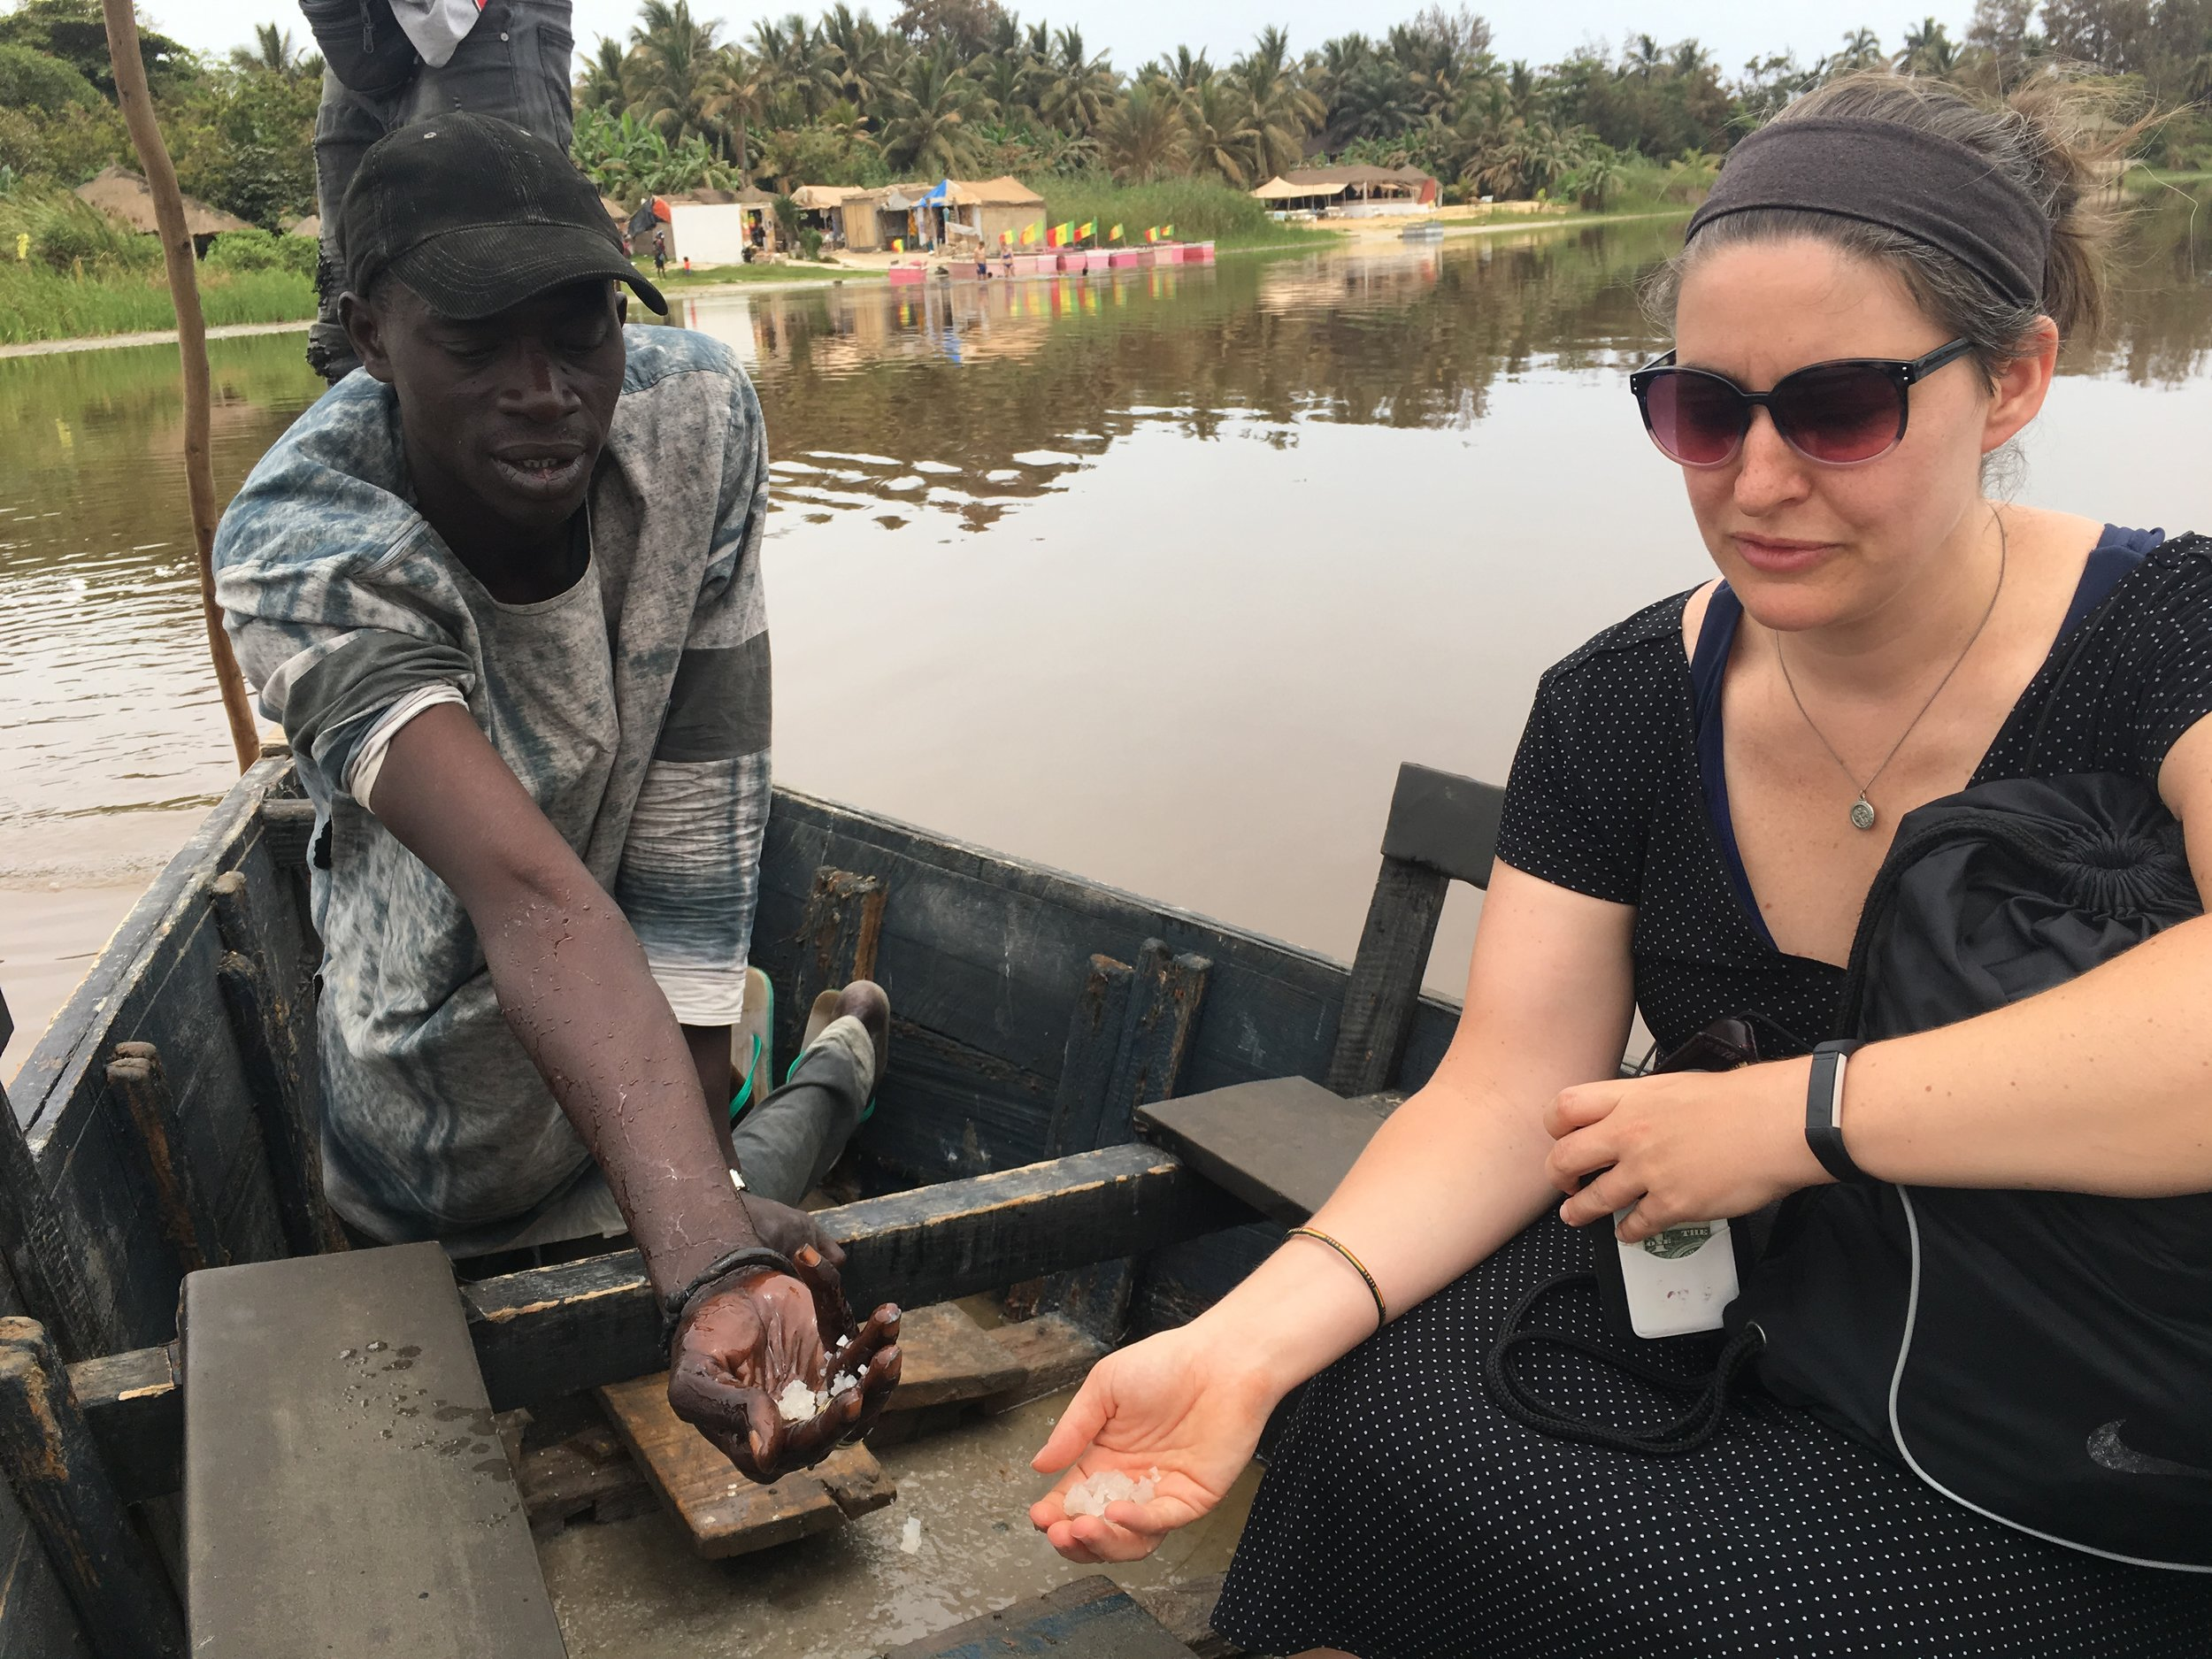 Megan and Lamine hold the salt Lamine scooped off the bottom of the late. The water feels oily and slick.